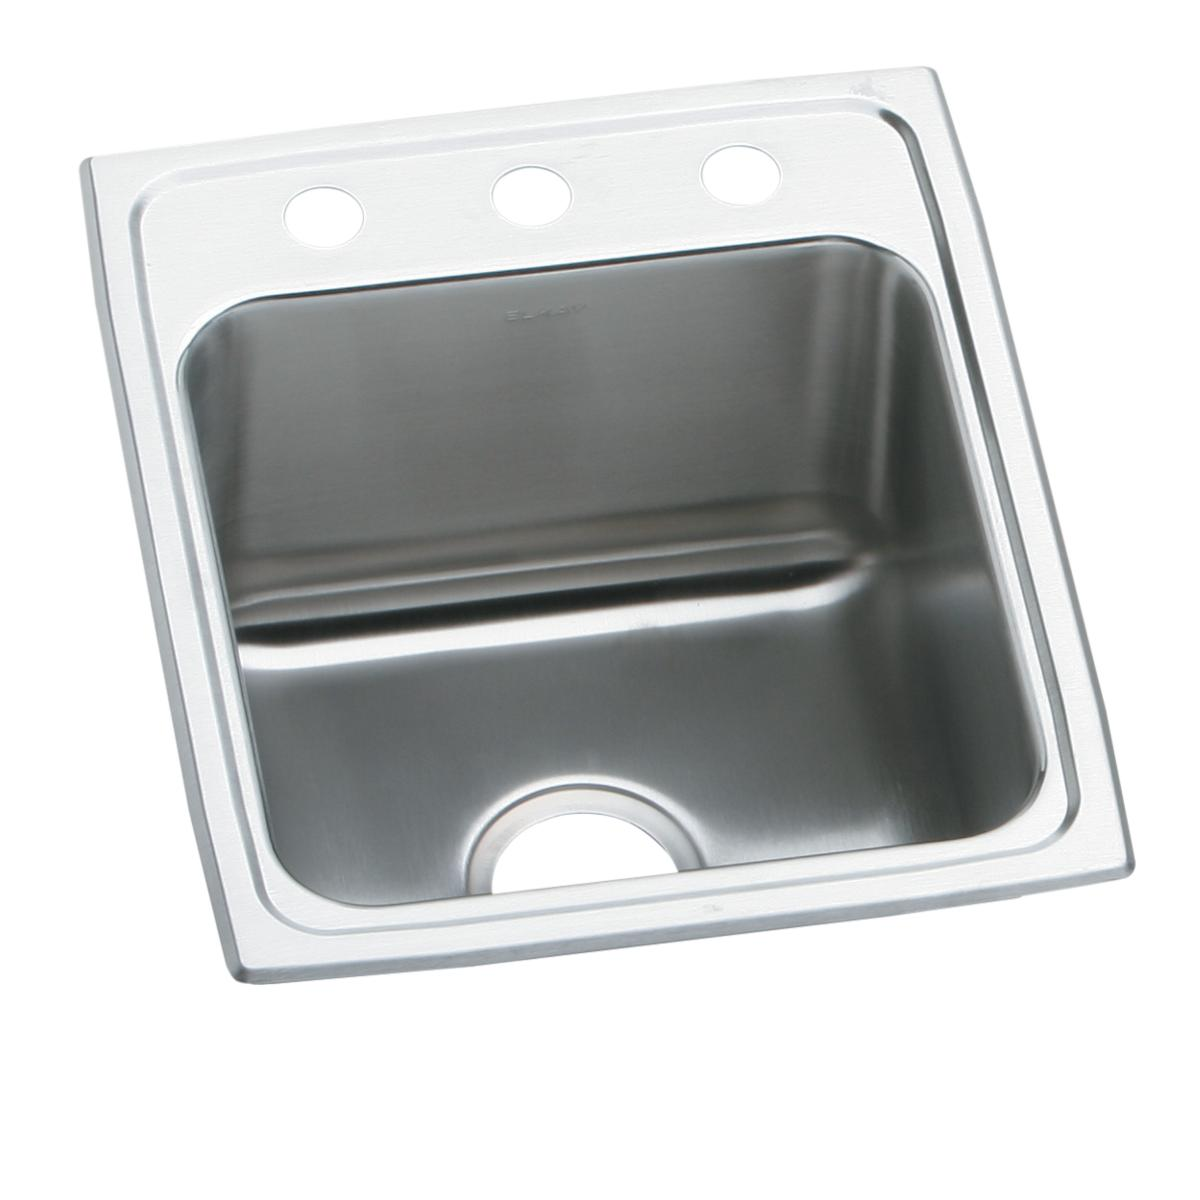 "Elkay Lustertone Classic Stainless Steel 15"" X 22"" X 5-1/2"", Single Bowl Drop-in ADA Sink"